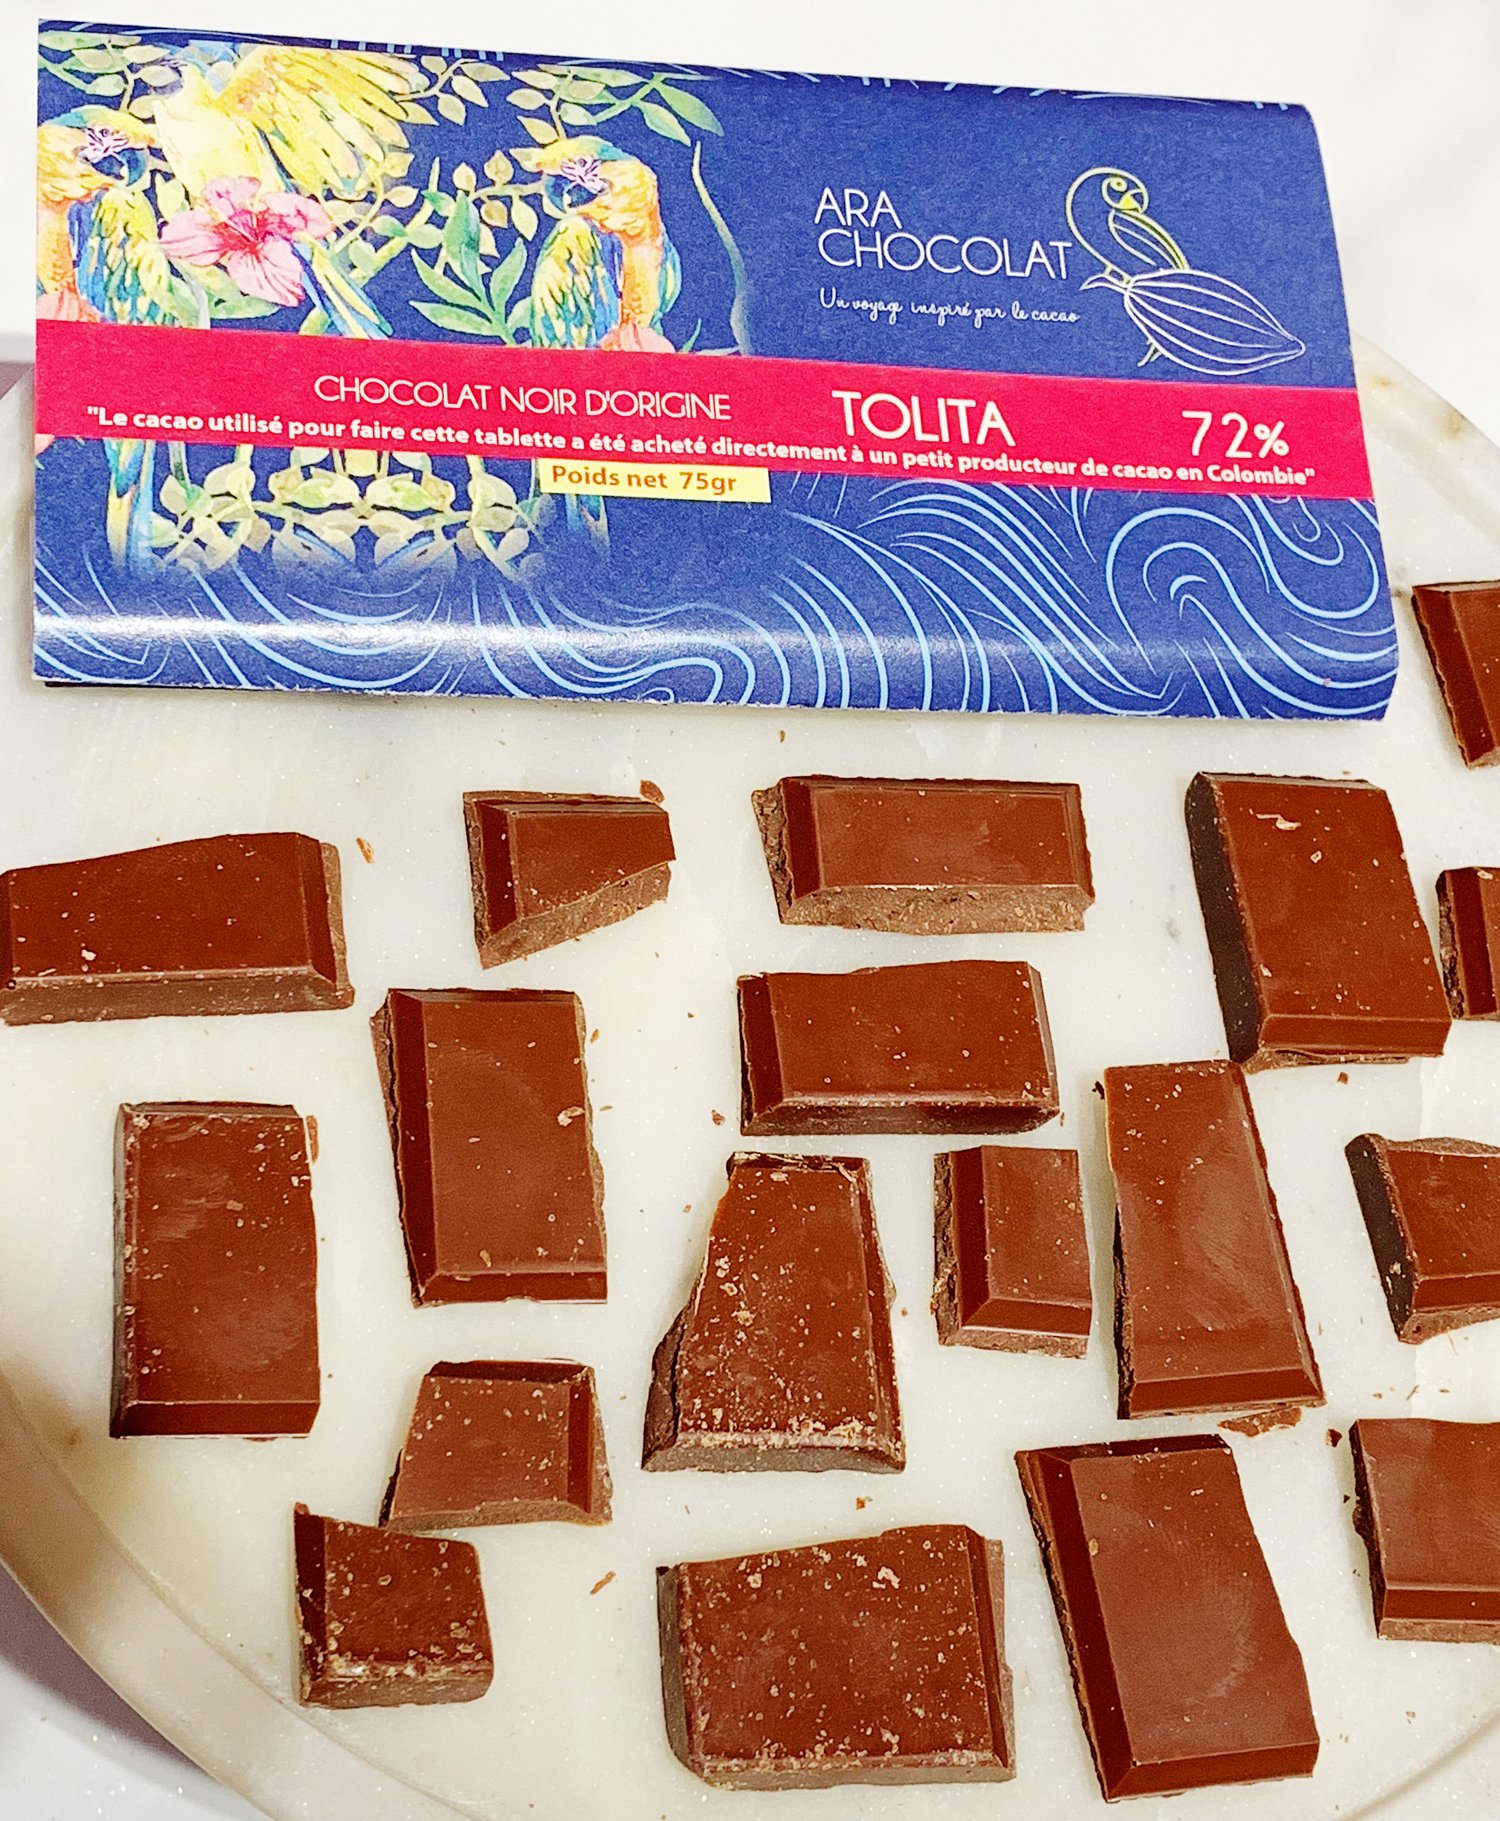 Notes From the Underground Chocolate Salon — Chocolate Noise